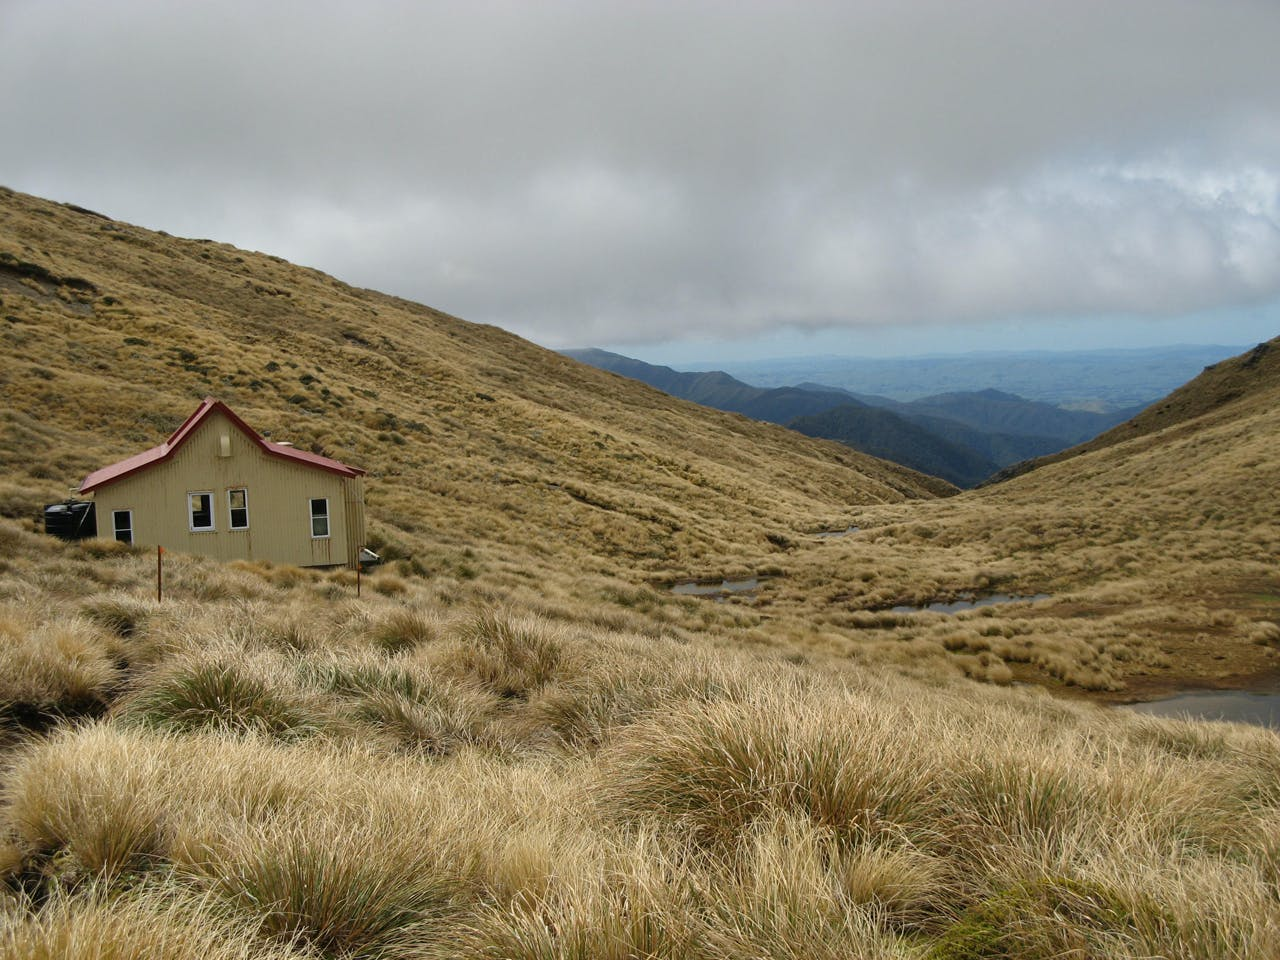 Trampers can still stay at Kime Hut but bunk space has been reduced to 10 until the upgrade is complete